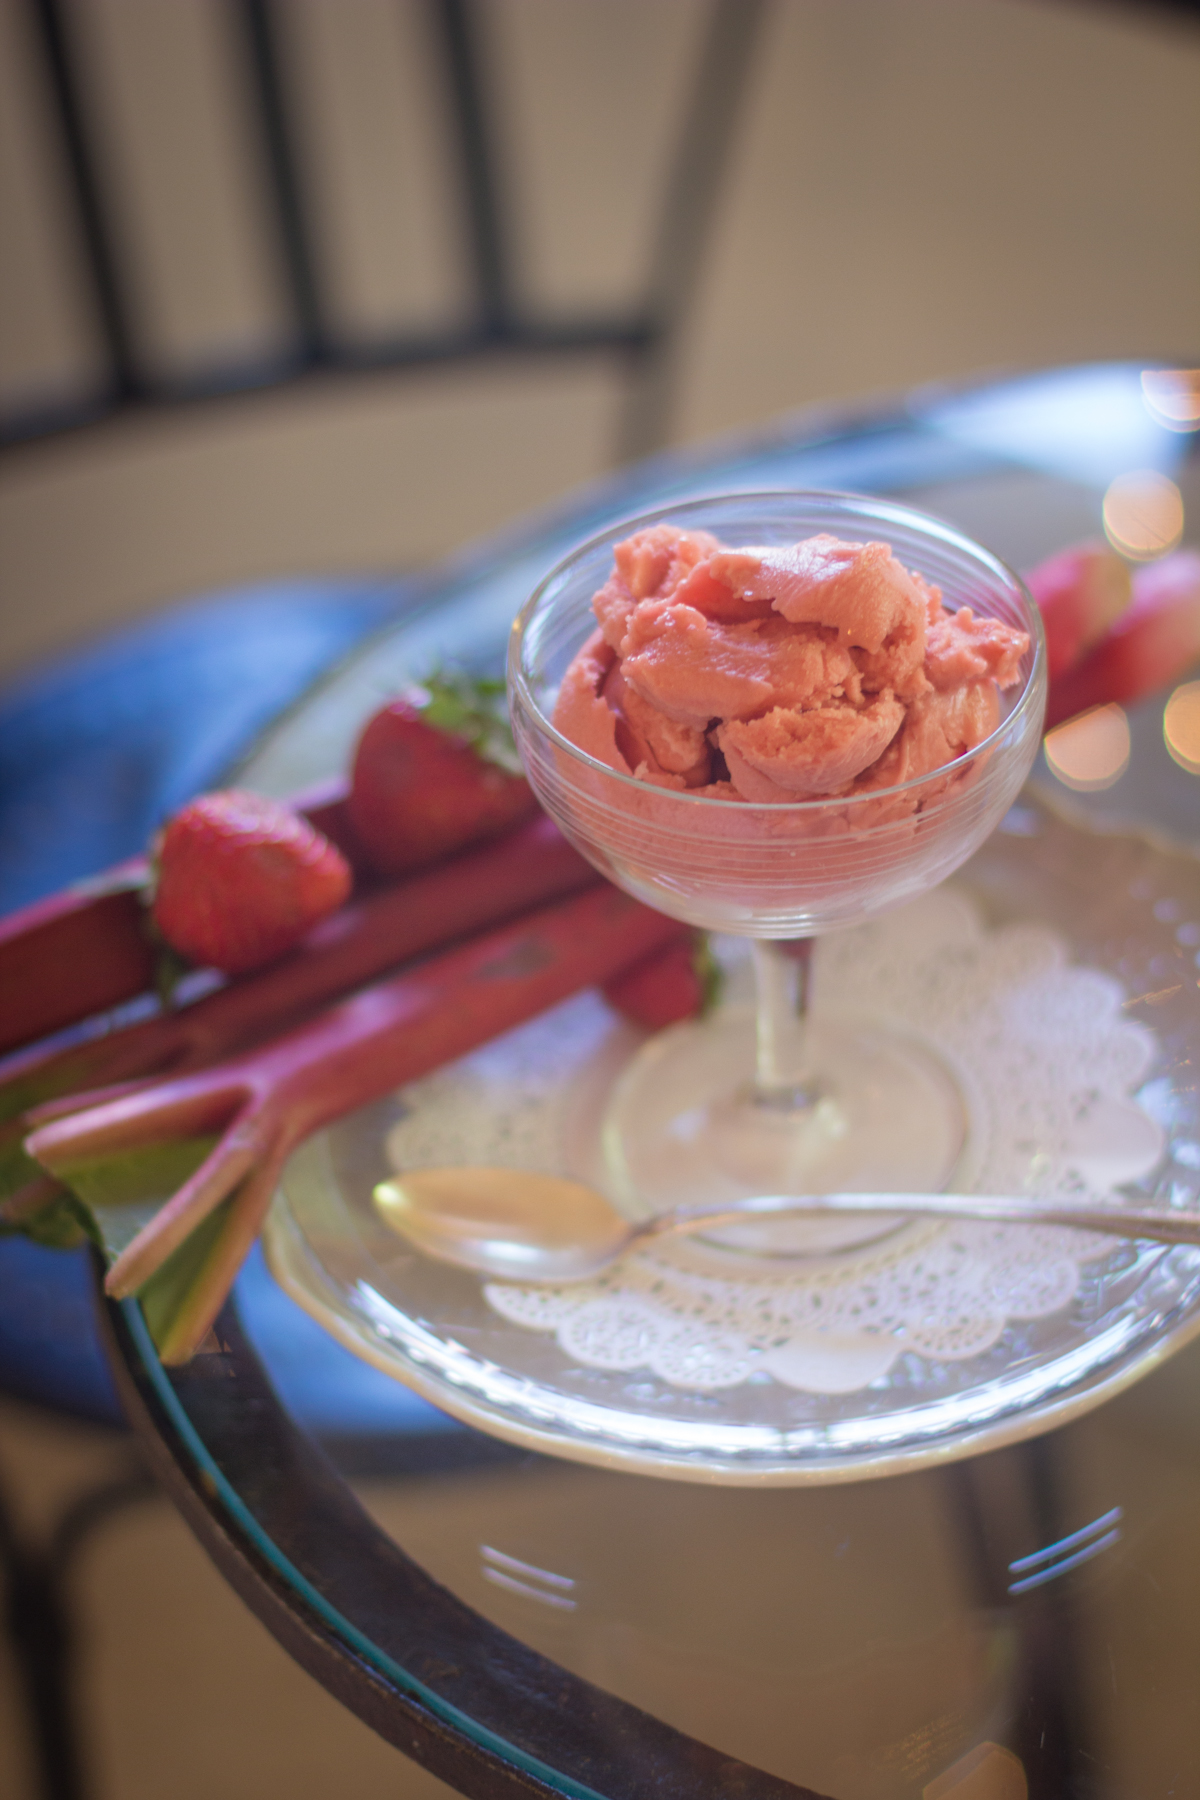 SPECIALTY ICE CREAMS  - Handmade with local fruit, veggies and spices.